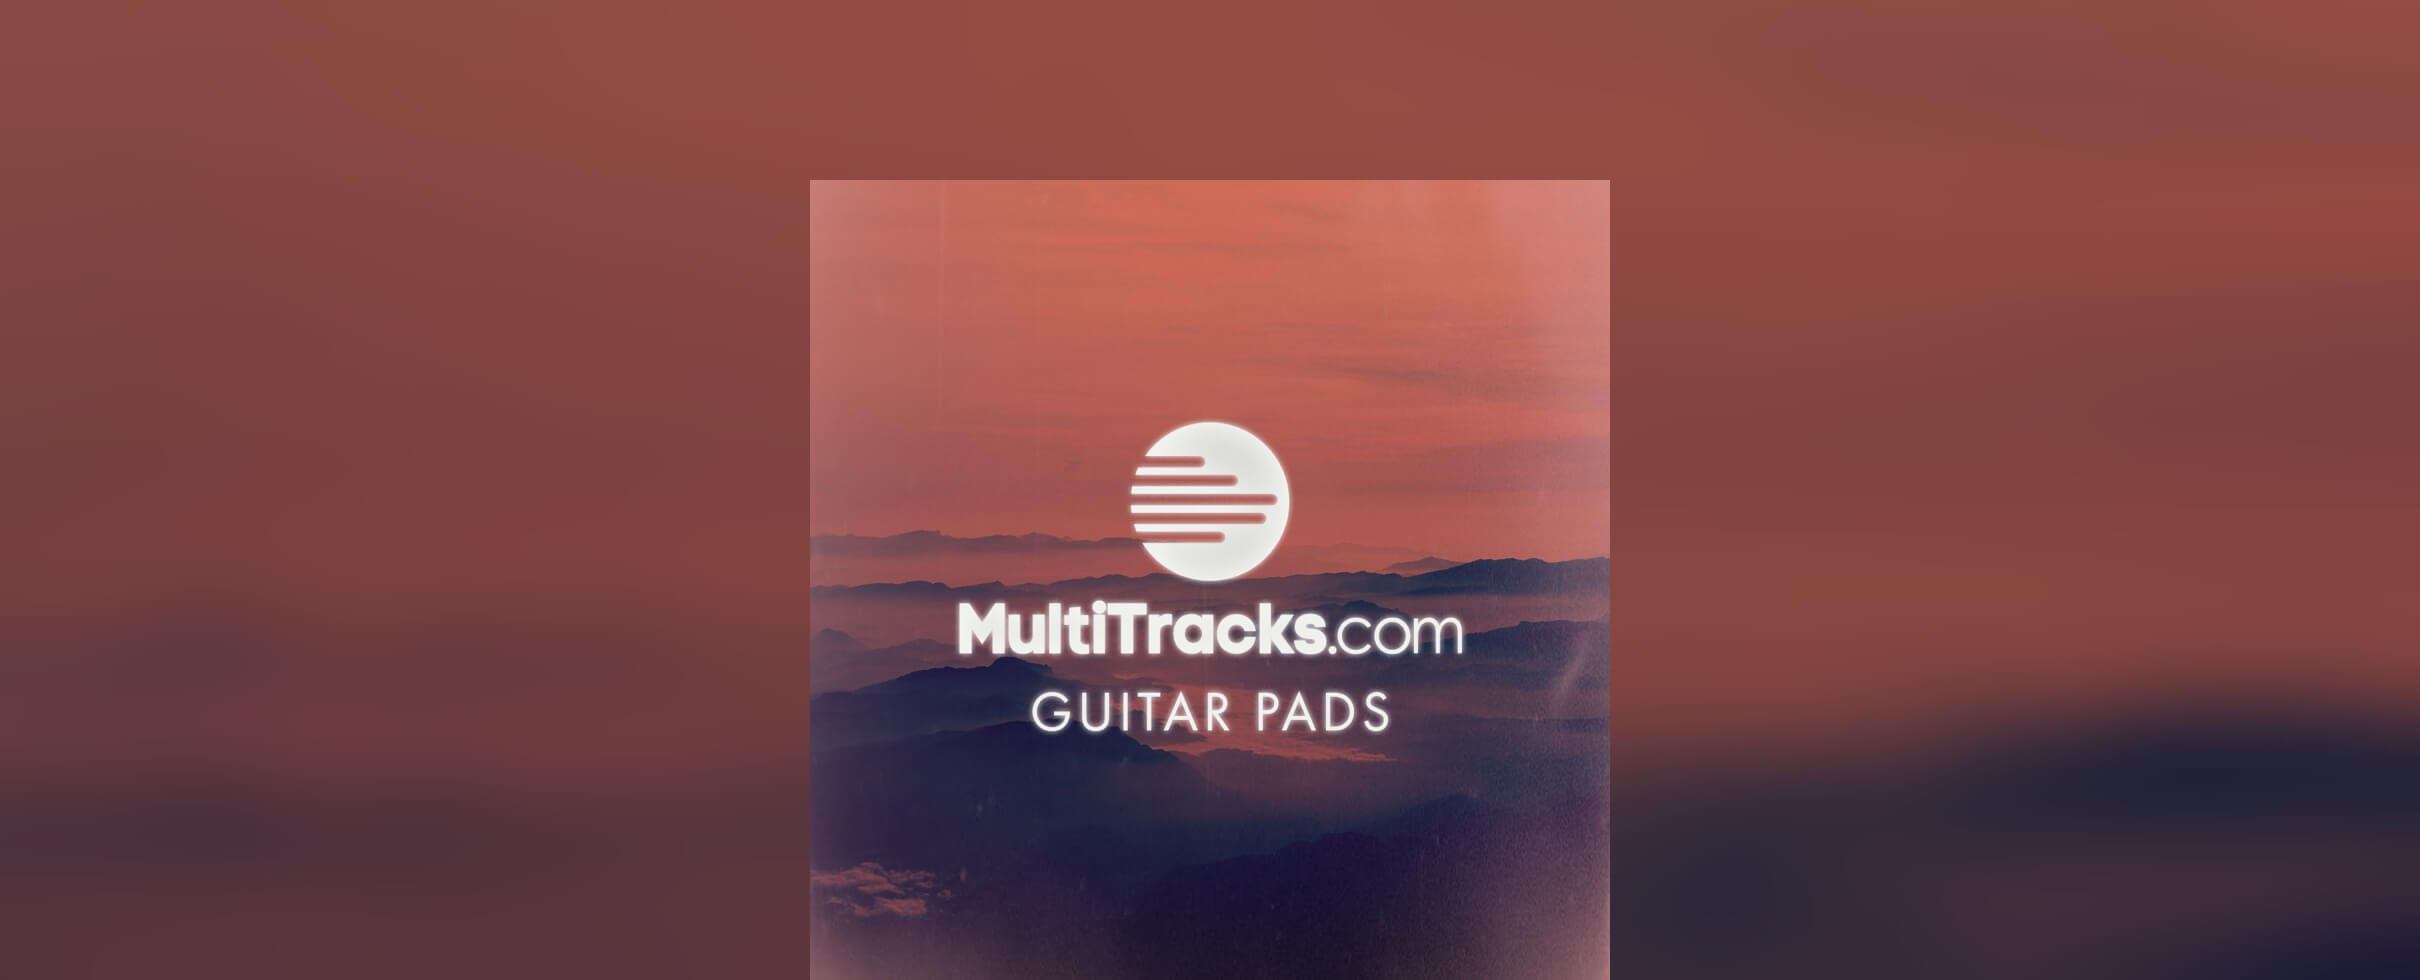 MultiTracks com